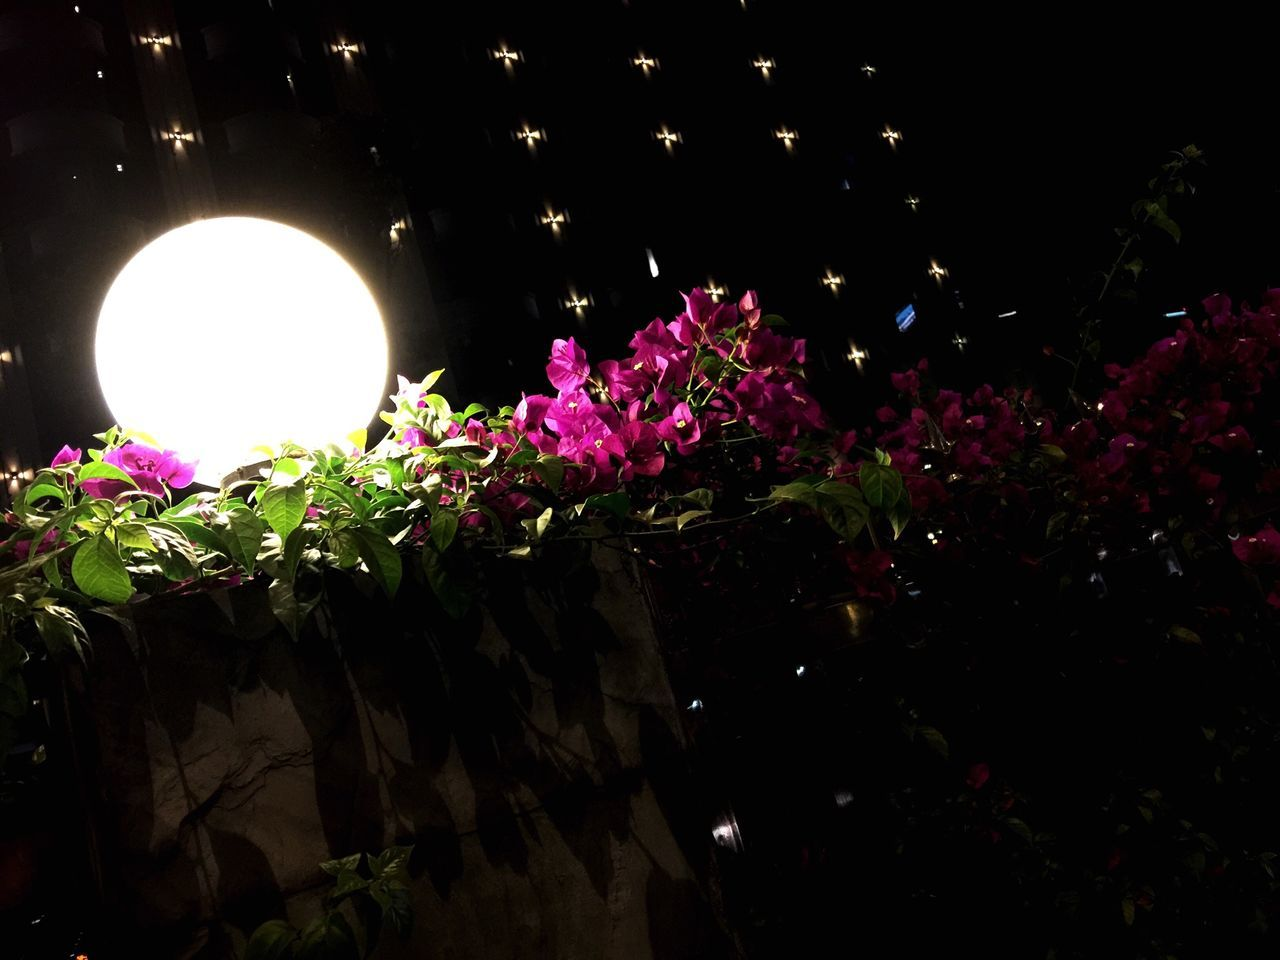 flower, night, growth, illuminated, no people, nature, low angle view, plant, freshness, fragility, beauty in nature, outdoors, close-up